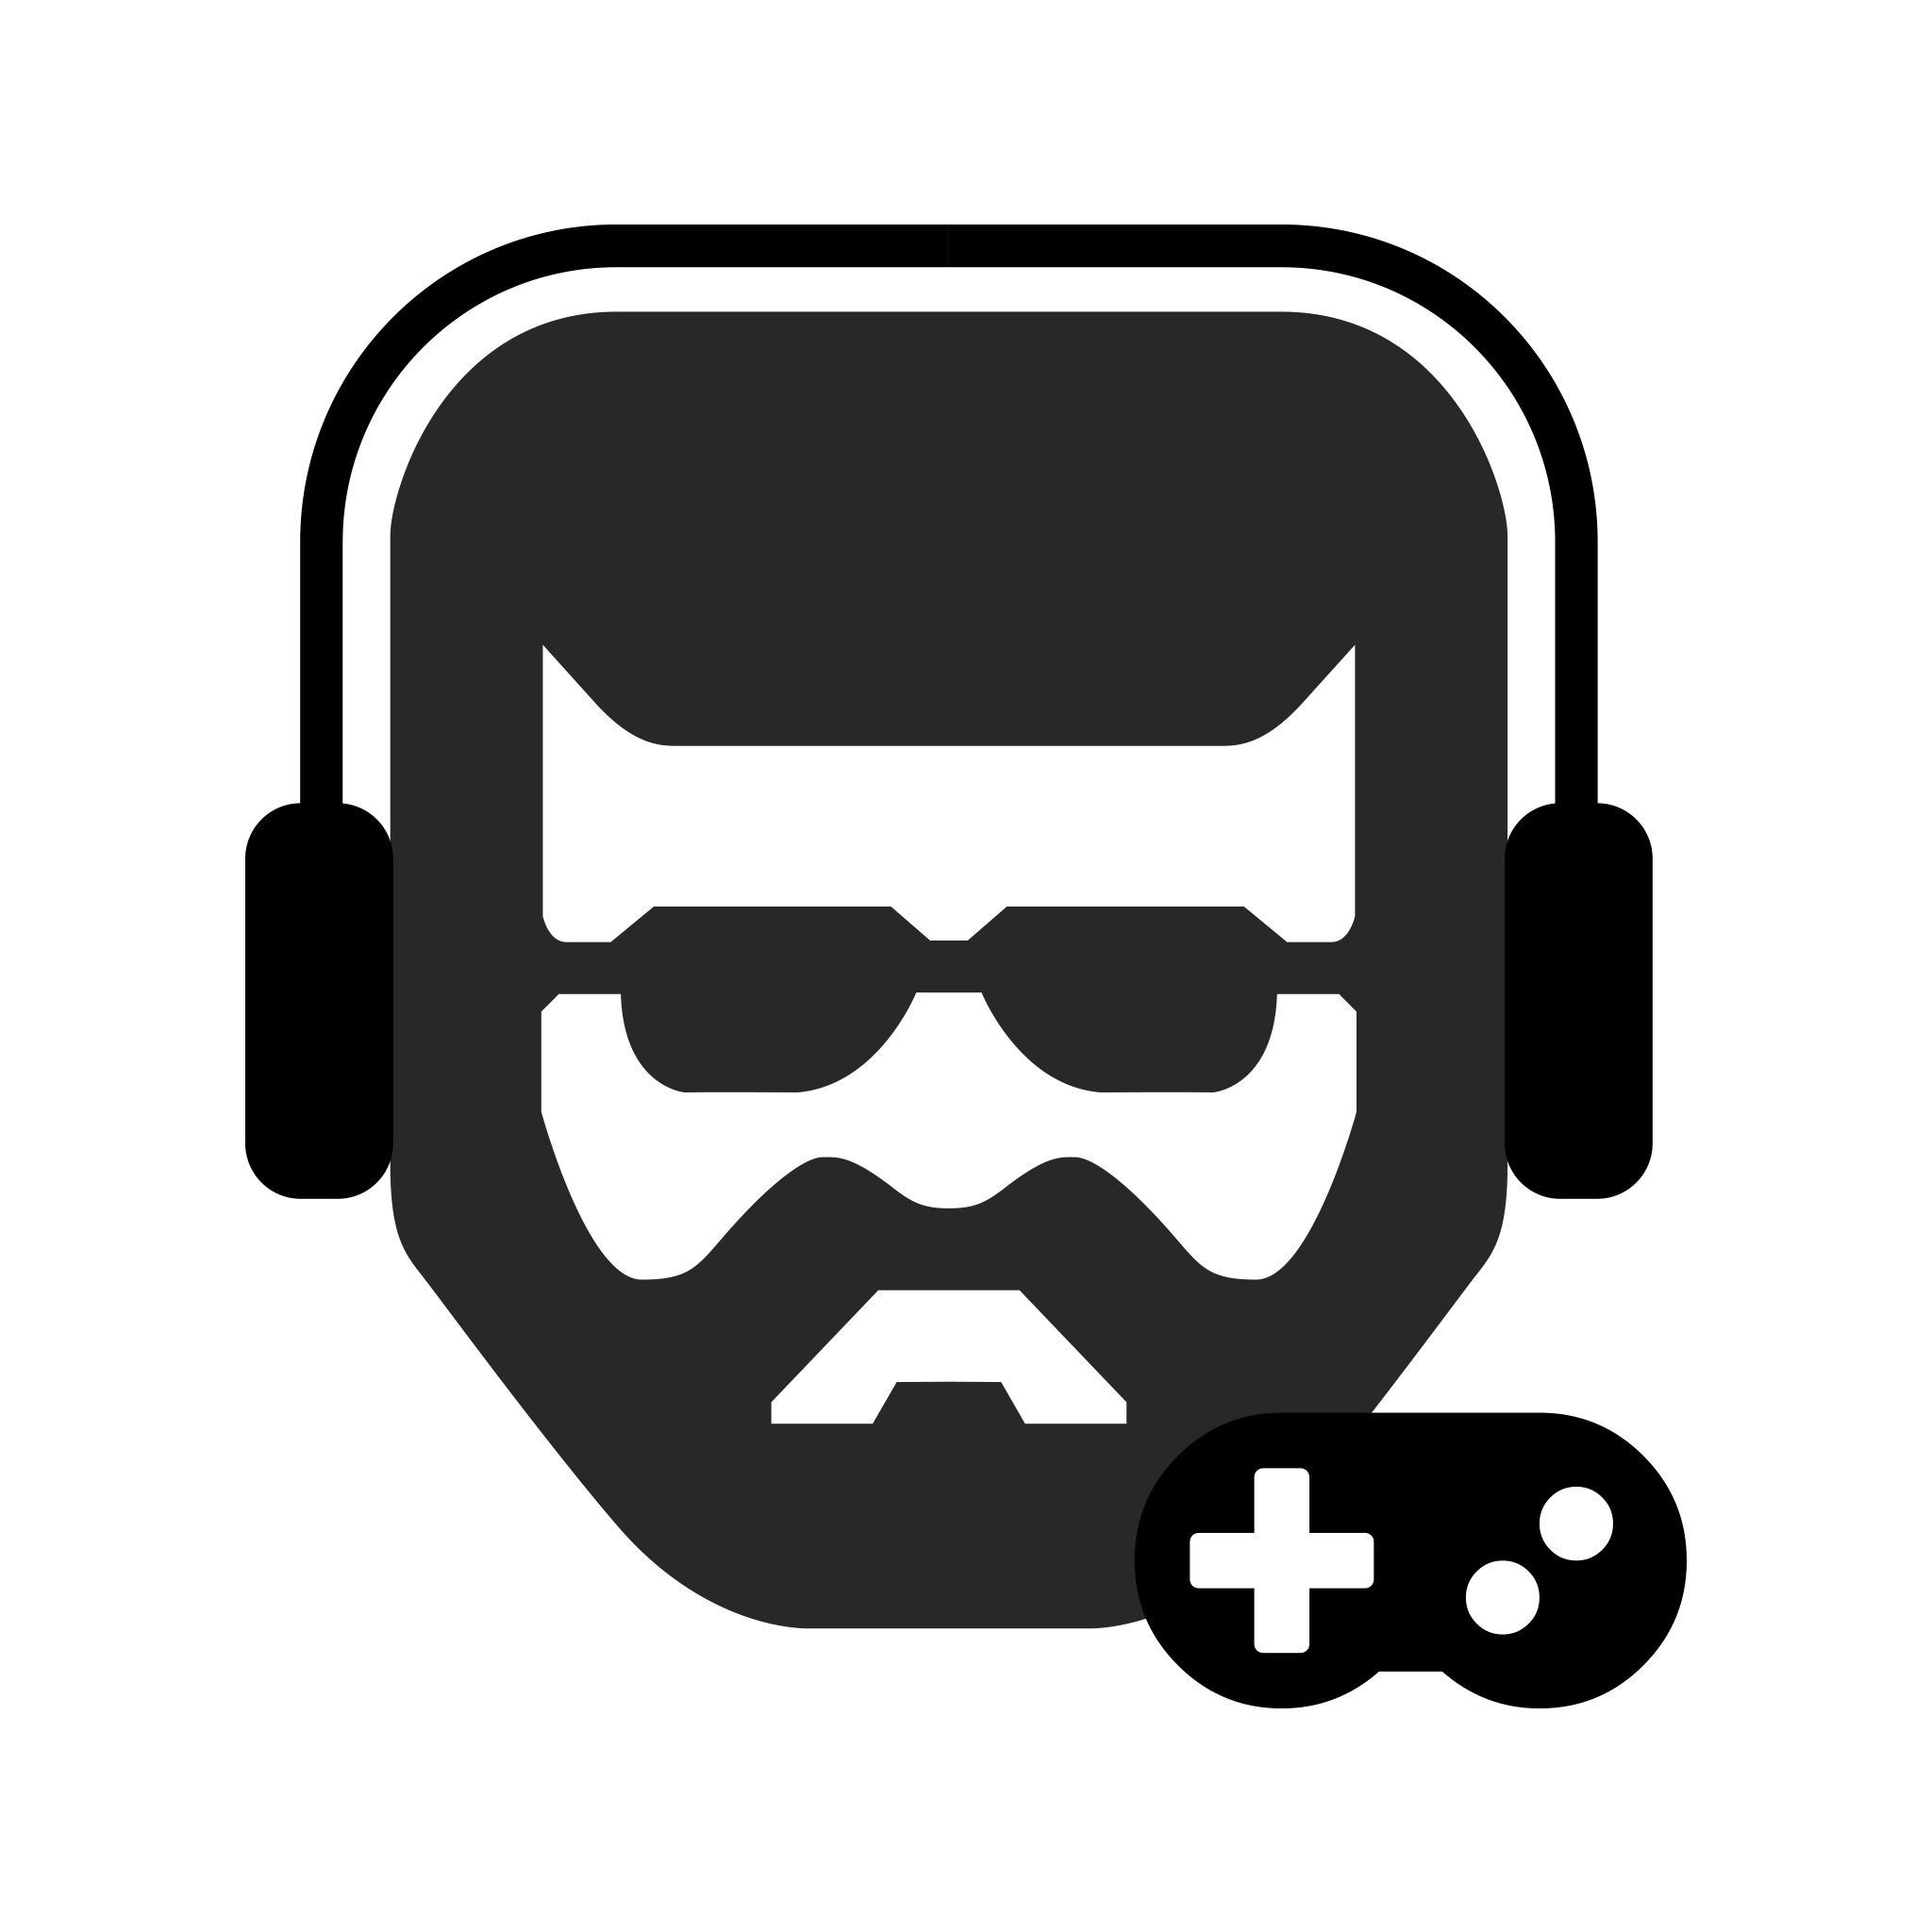 Gamer Png - Gamer Icon PNG - Search Png